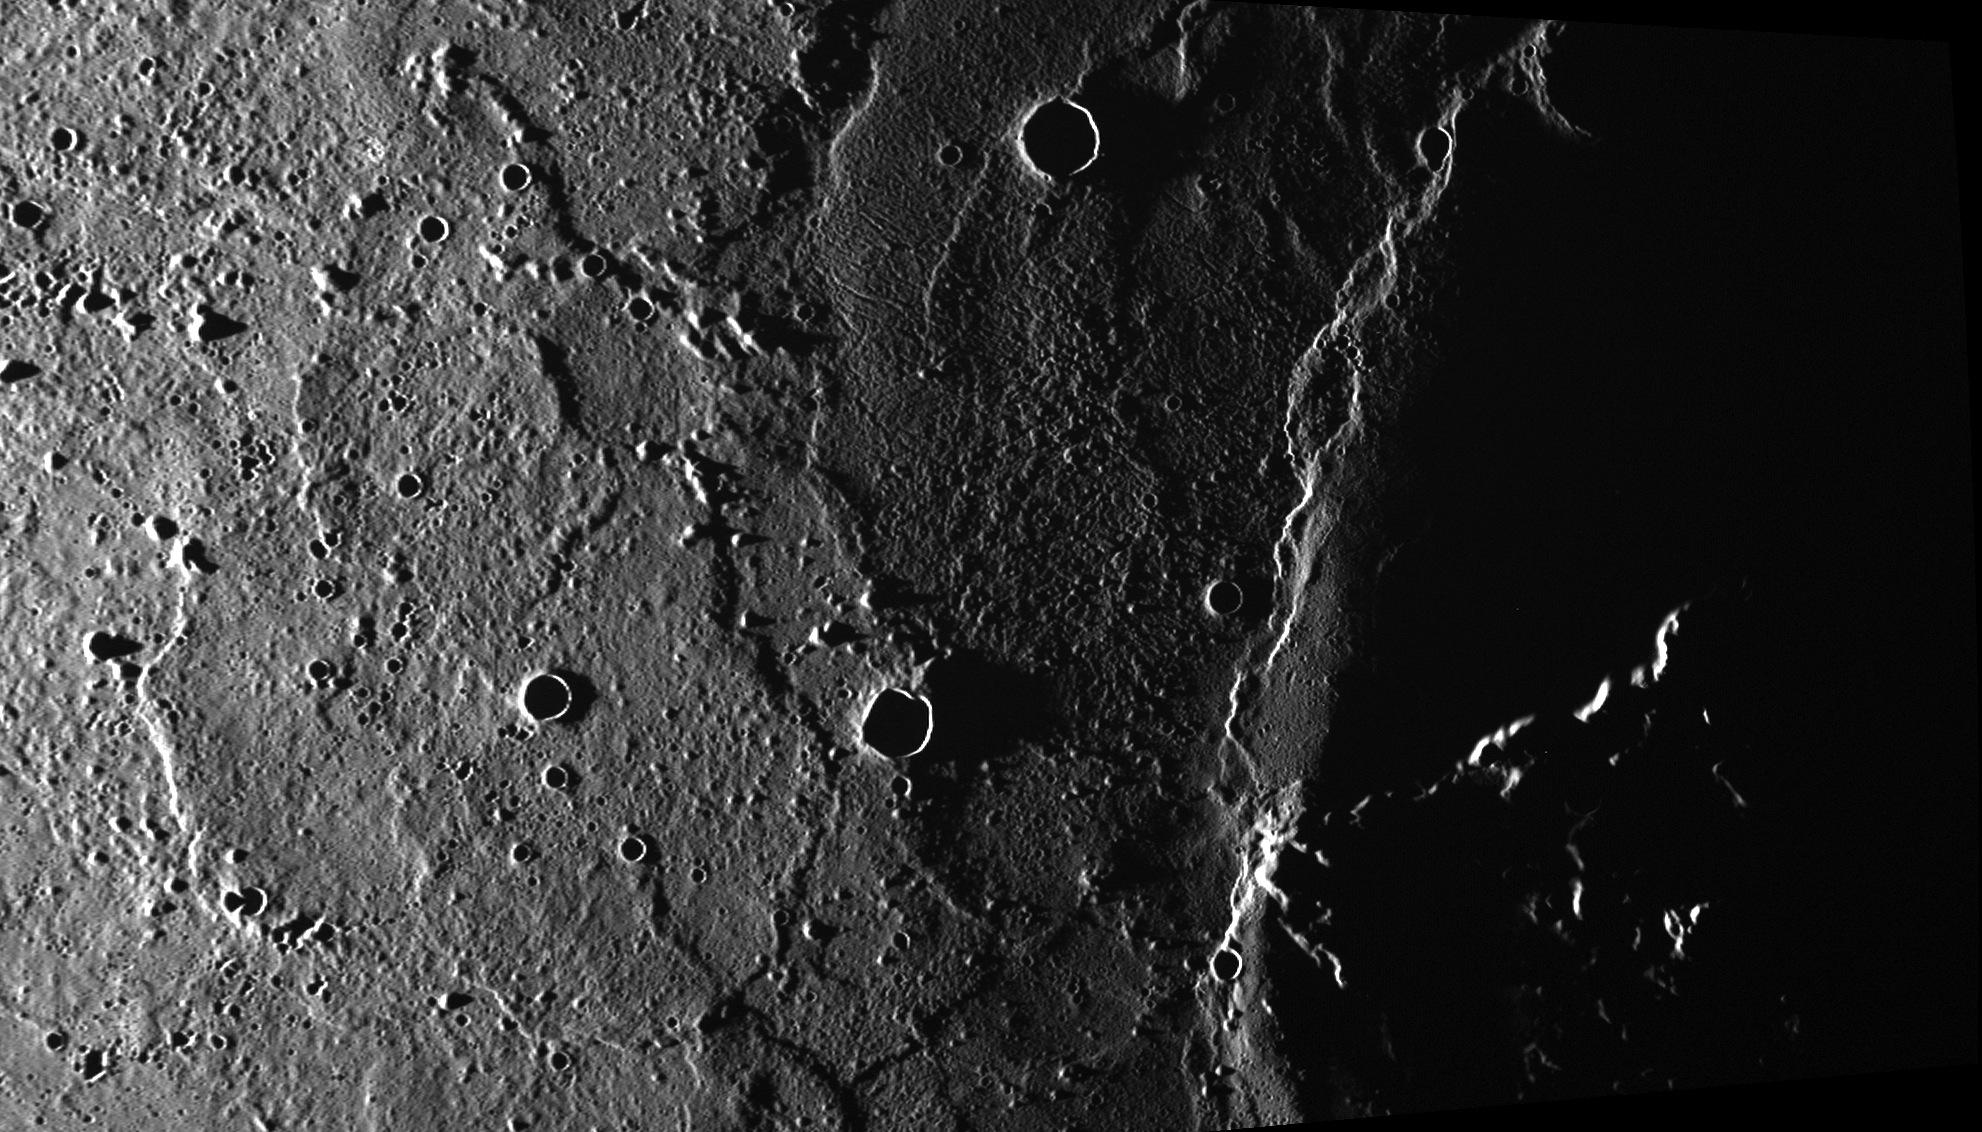 Craters and ridges on Mercury